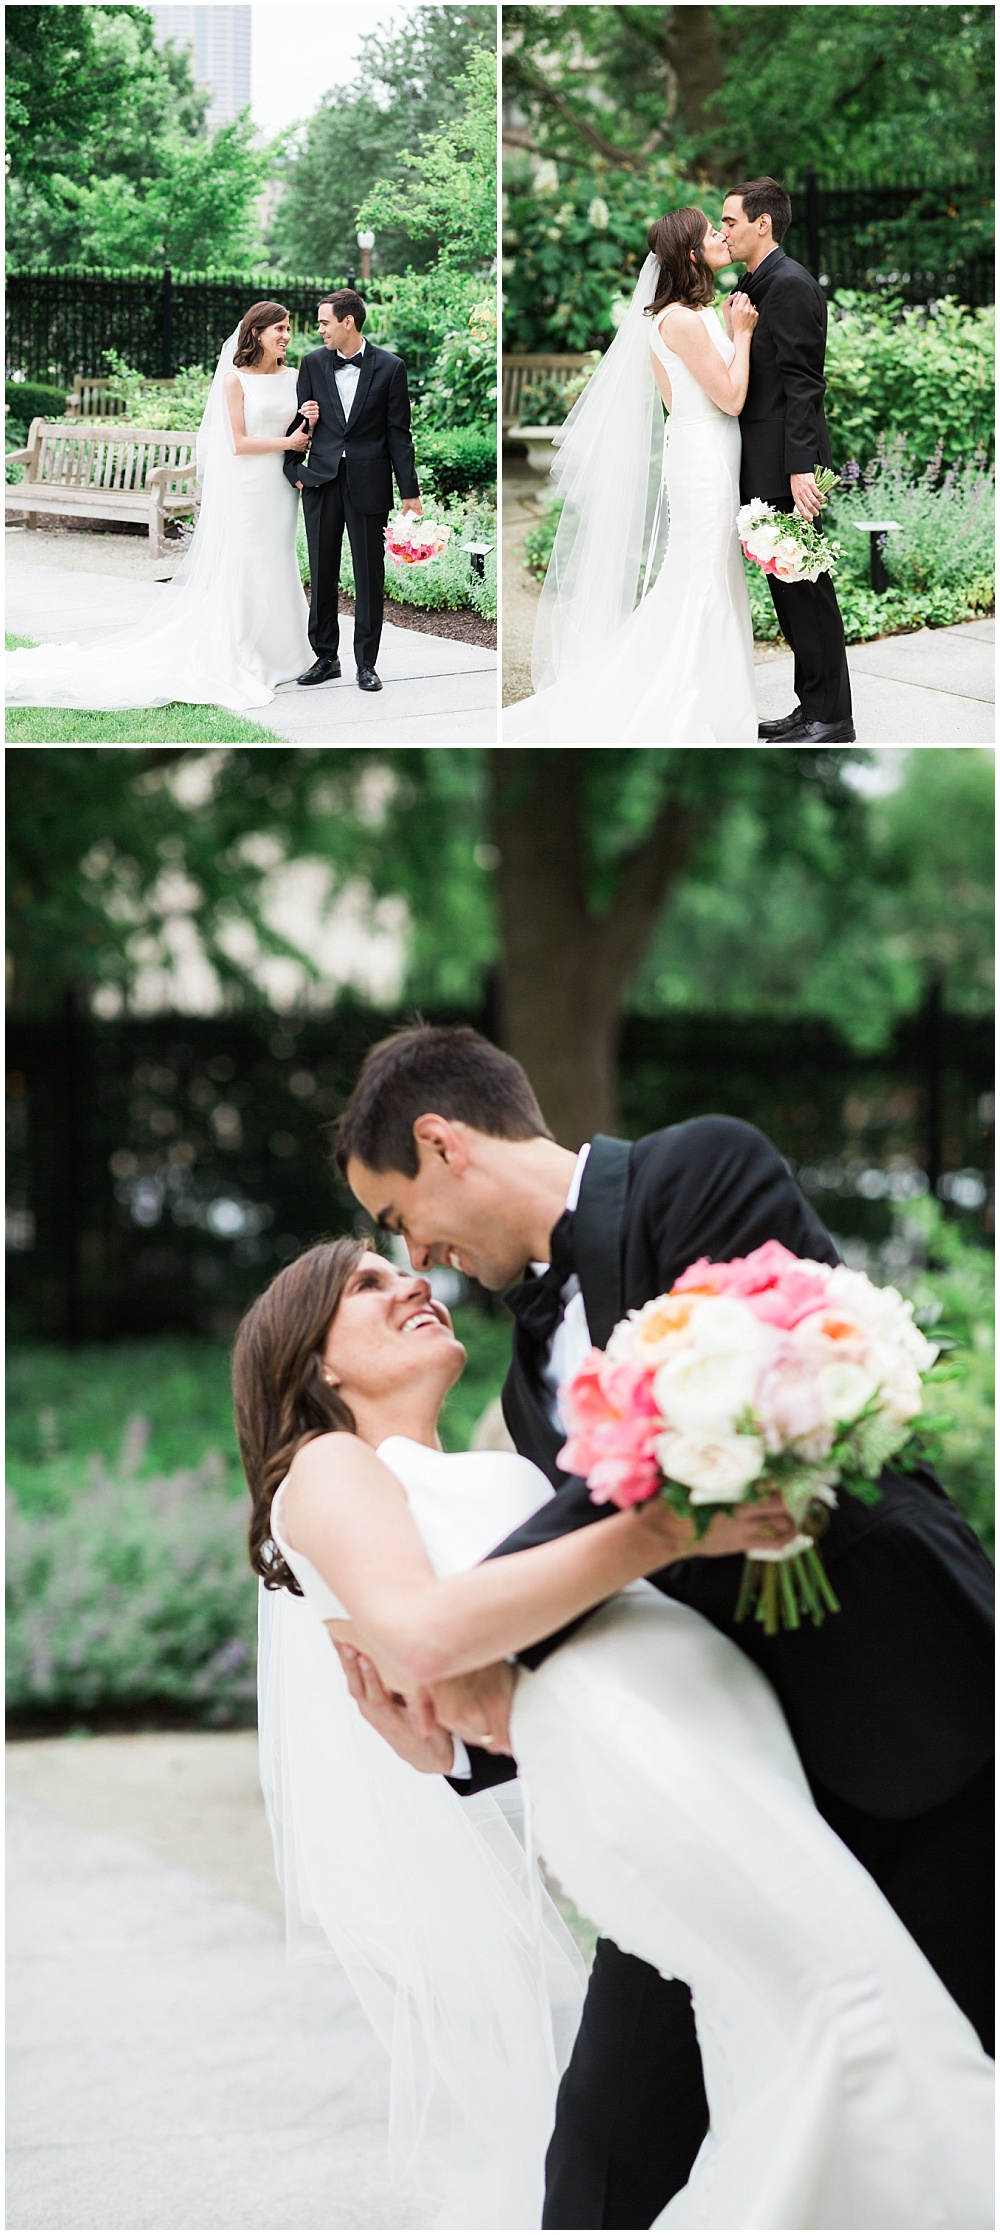 Bride and groom garden portraits. | Coral and navy Cape Cod-inspired downtown Indianapolis library wedding with Gaby Cheikh Photography and Jessica Dum Wedding Coordination